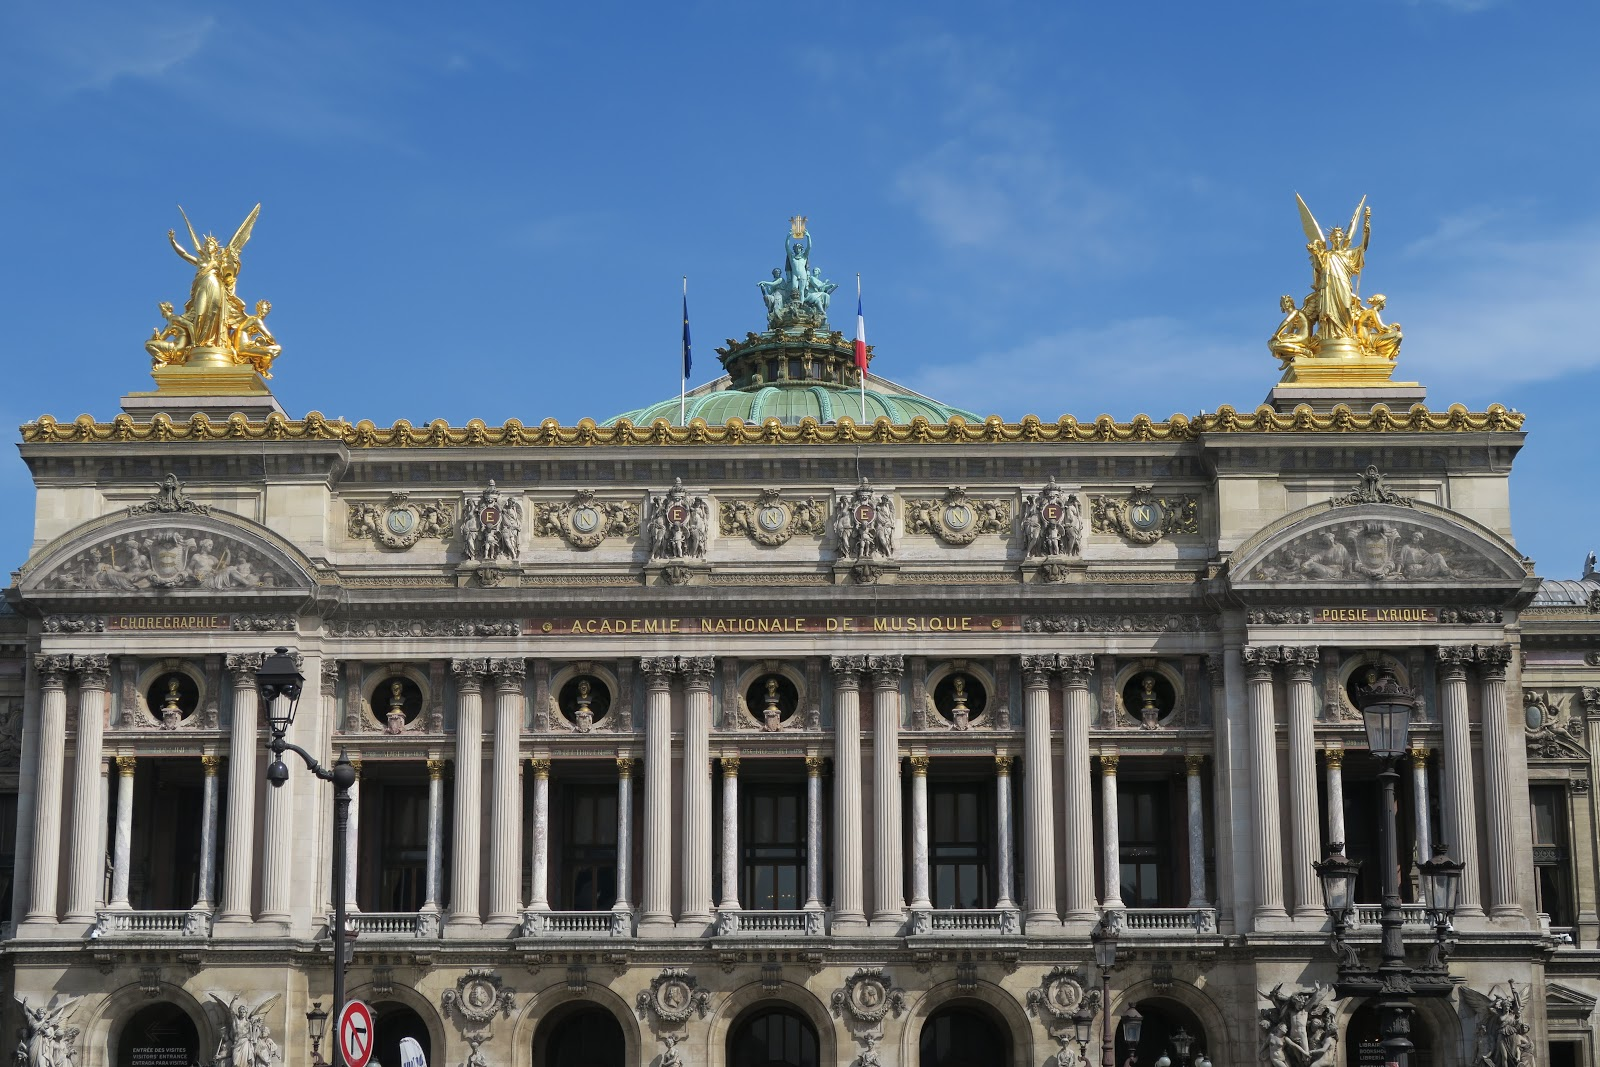 The Paris Opera house from our trip to Paris